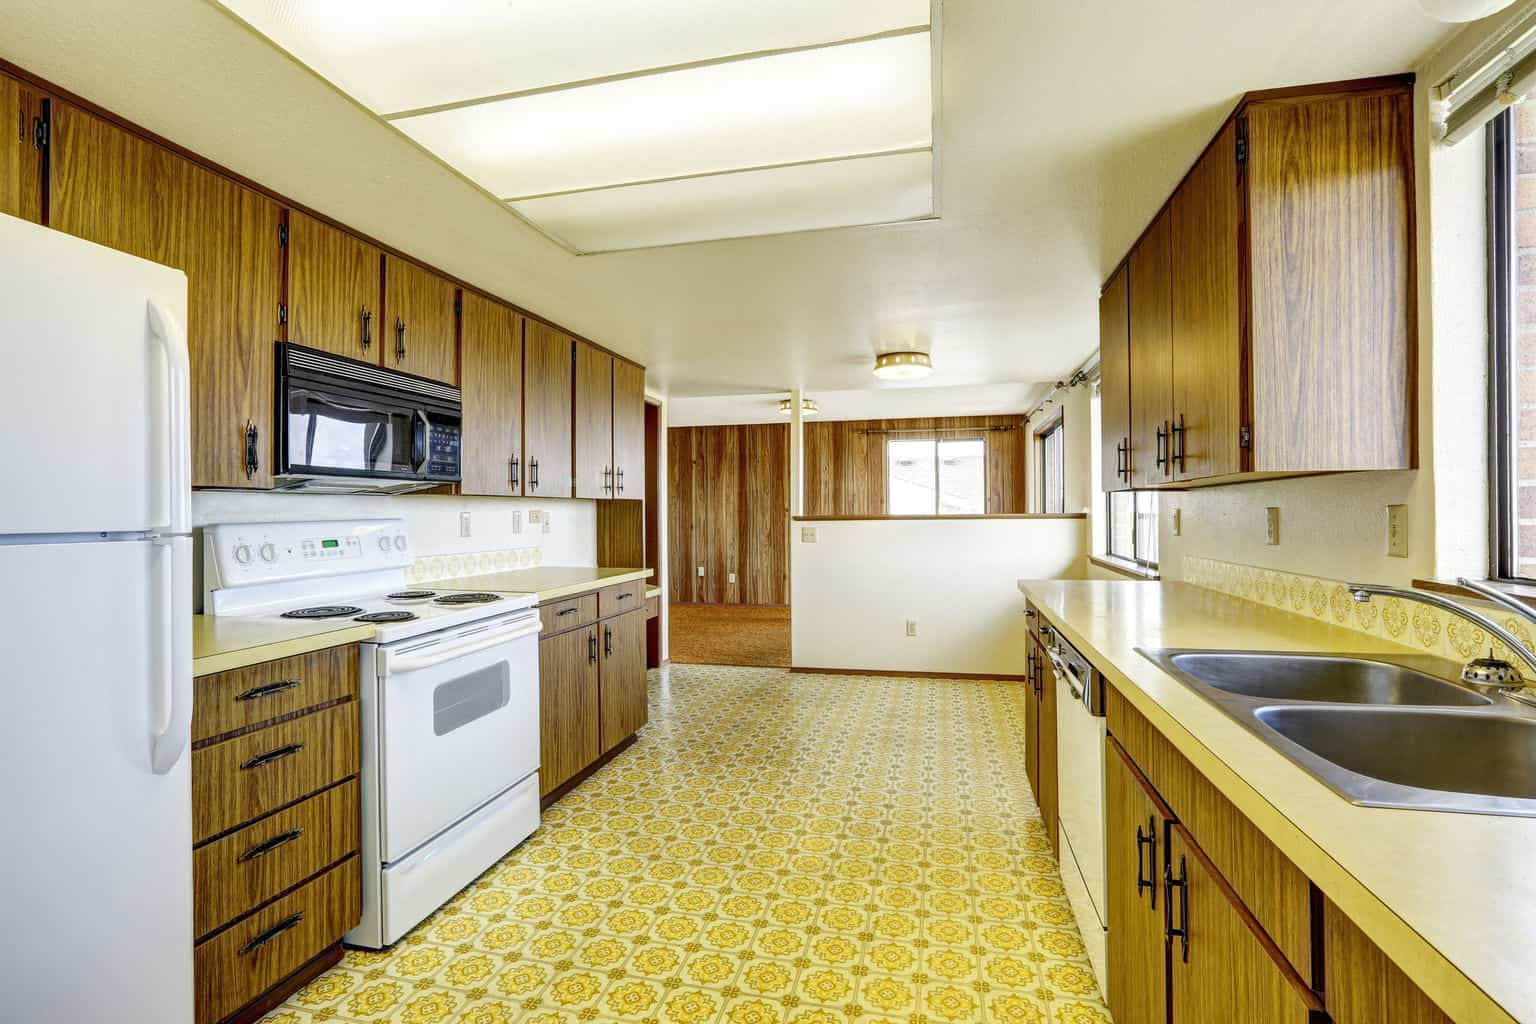 Beautiful Installing Kitchen Linoleum Flooring Is A Sure Way To Add Value To Your  Home, As The Cost Is Minimal And The End Result Is Transformative!